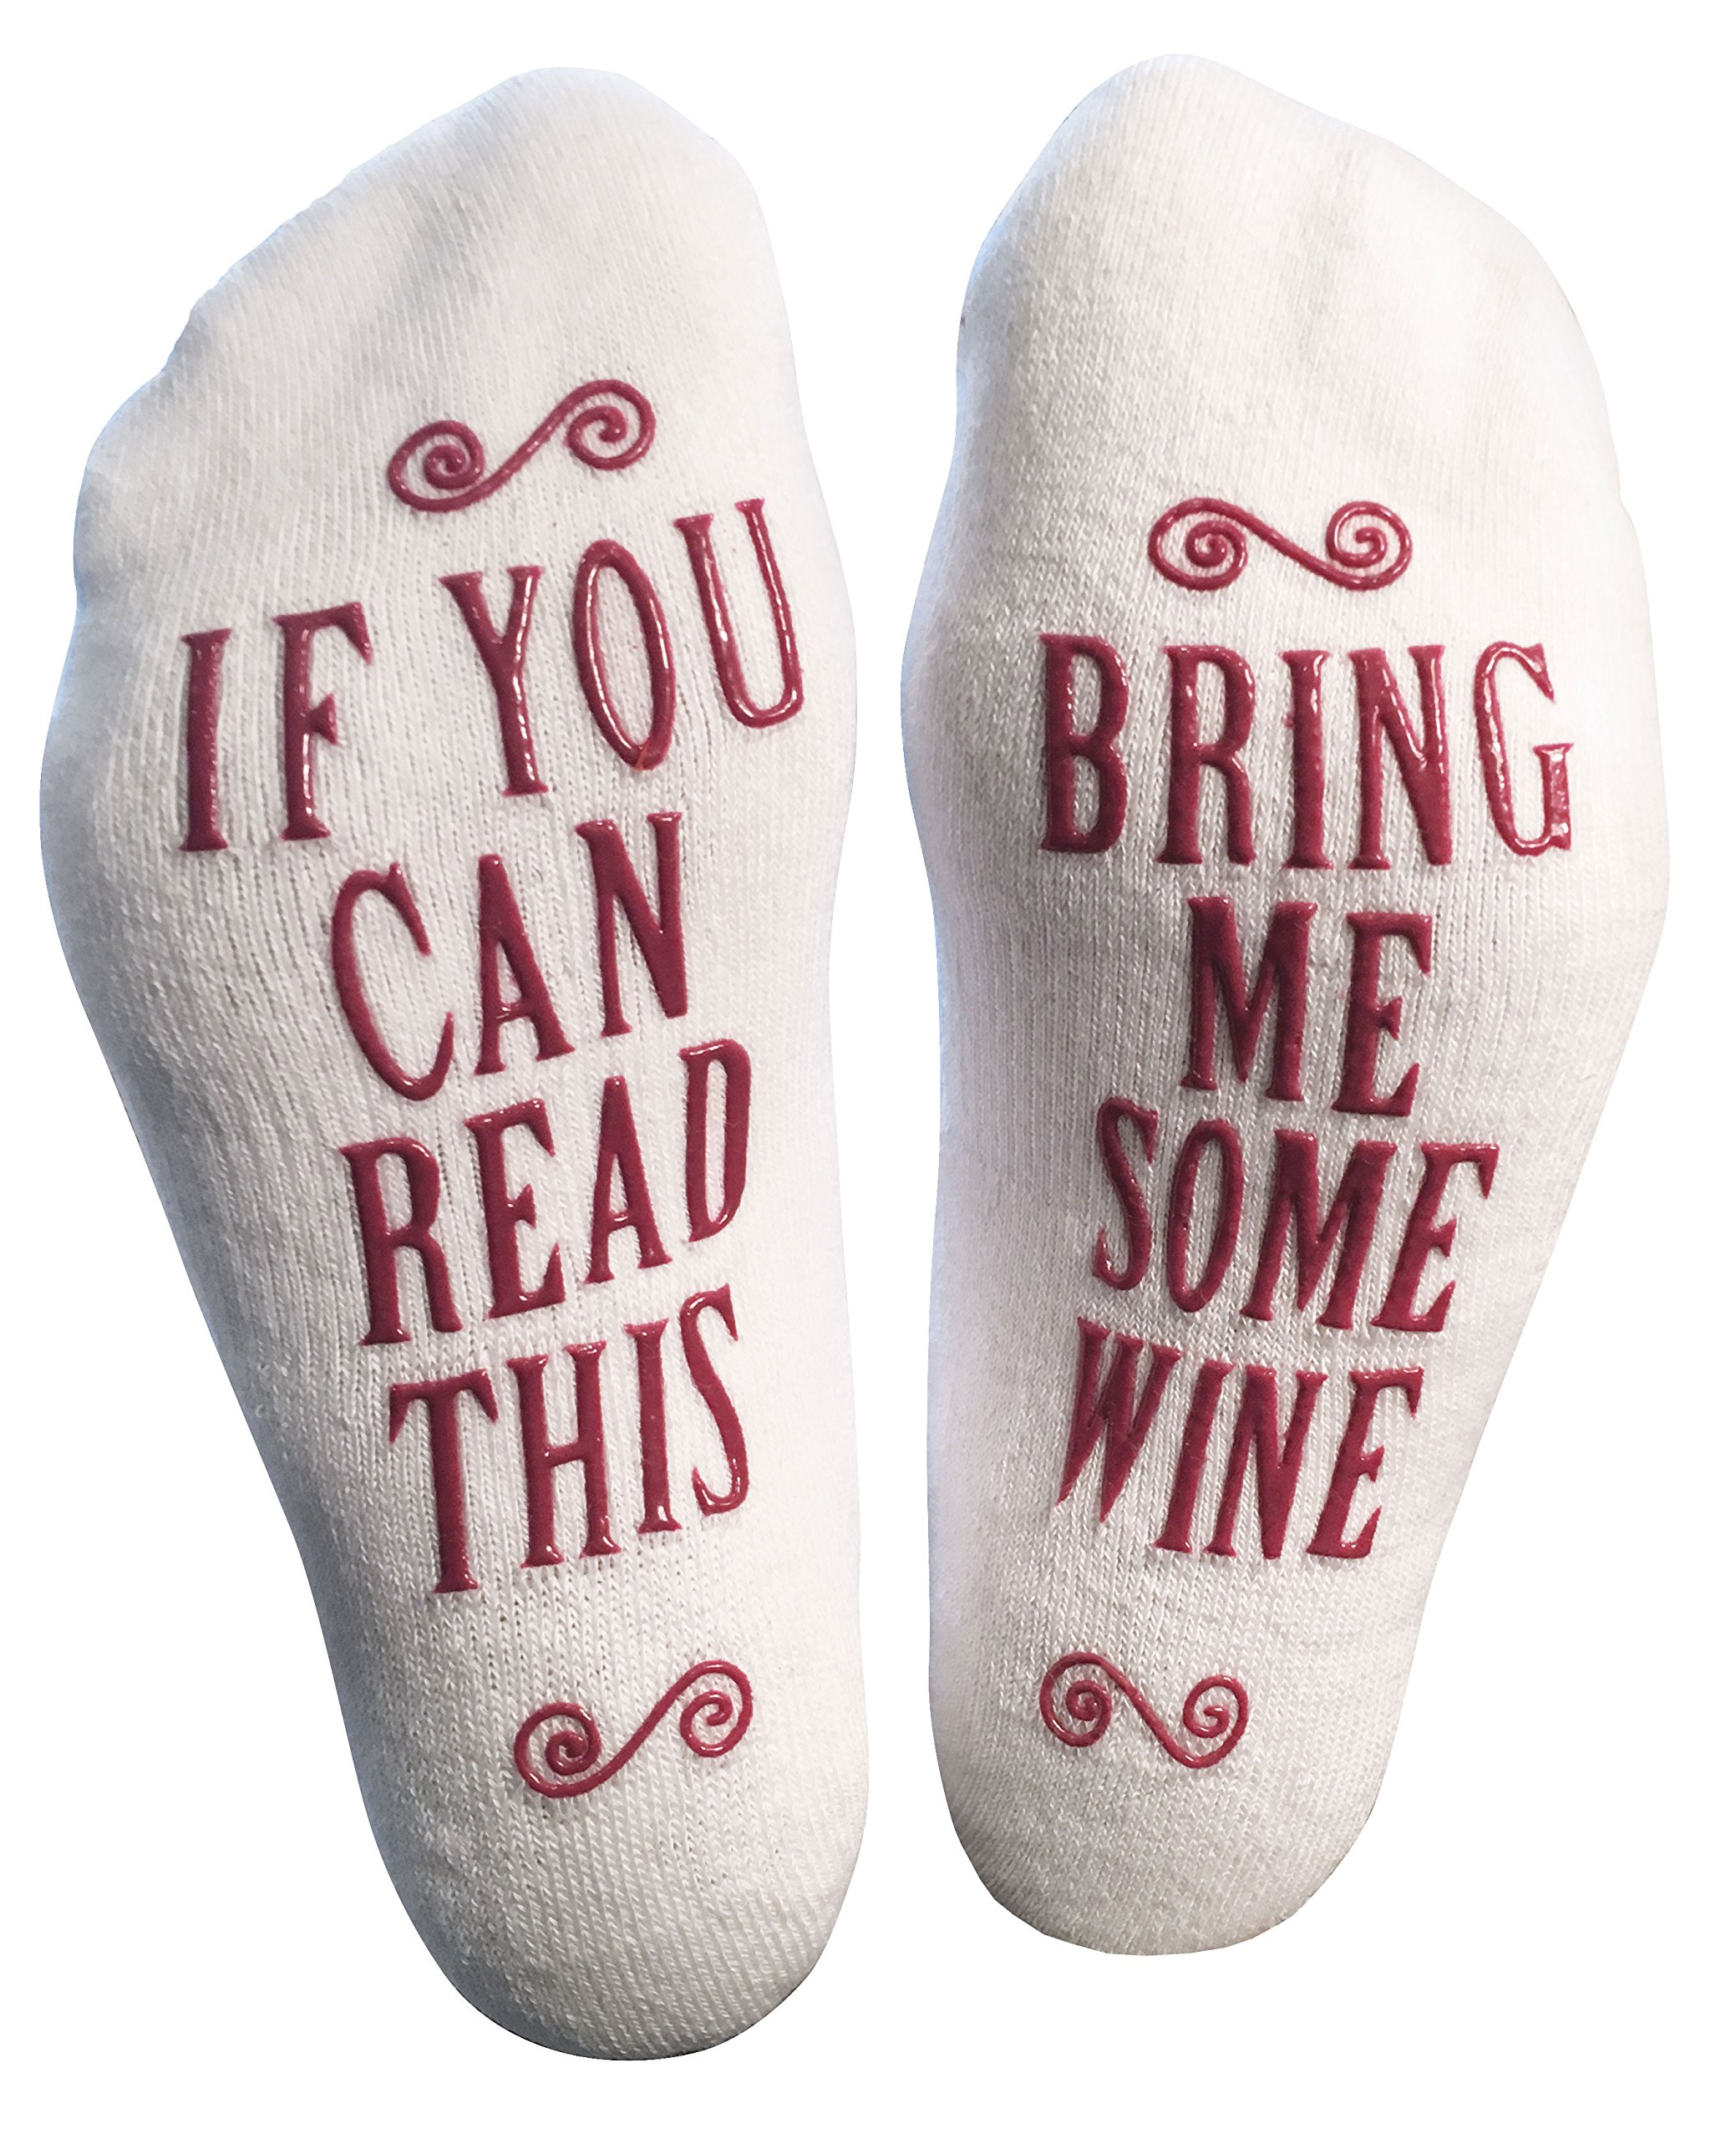 "Luxury Combed Cotton ""Bring Me Some Wine"" Novelty Socks - Perfect Hostess or Housewarming Gift Idea for Women, Valentine's Day Gift Idea for a Wine Lover - By Haute Soiree"